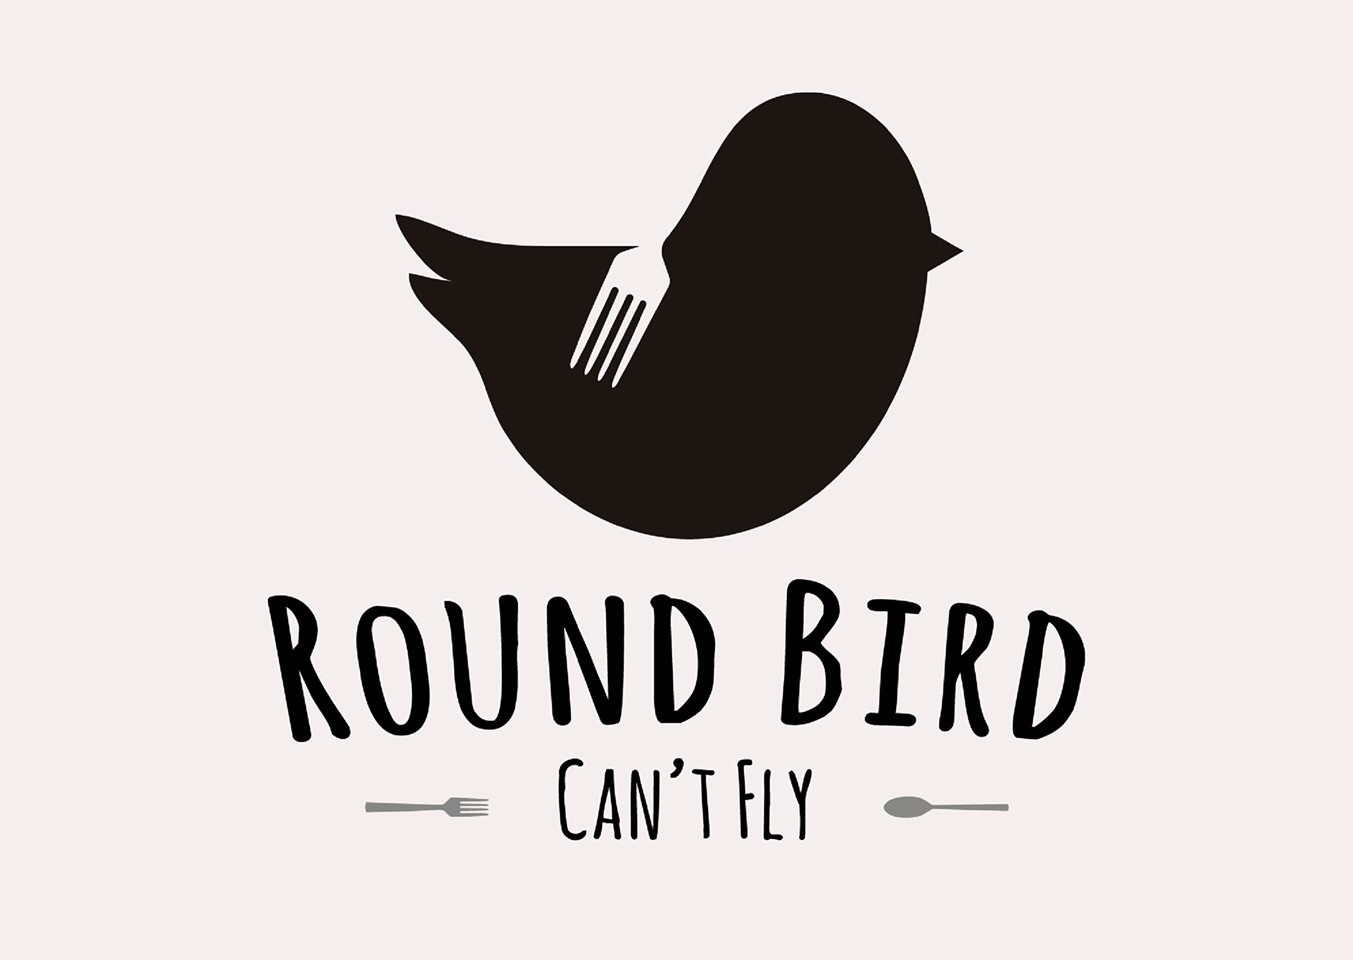 Round bird can't fly